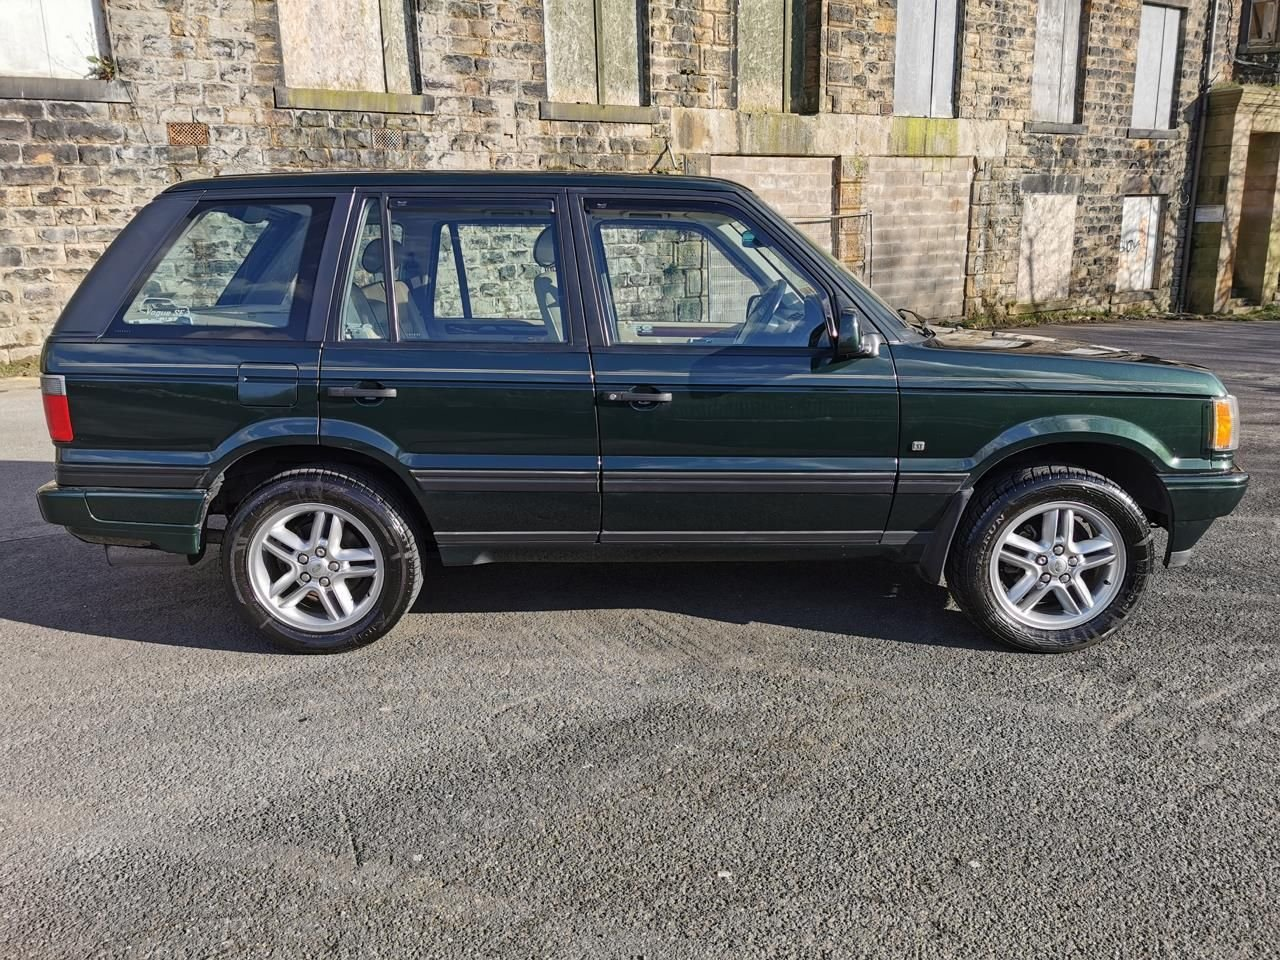 1999 Range Rover Vogue SE 1 of 30 cars, 1 Year Warranty For Sale (picture 5 of 6)